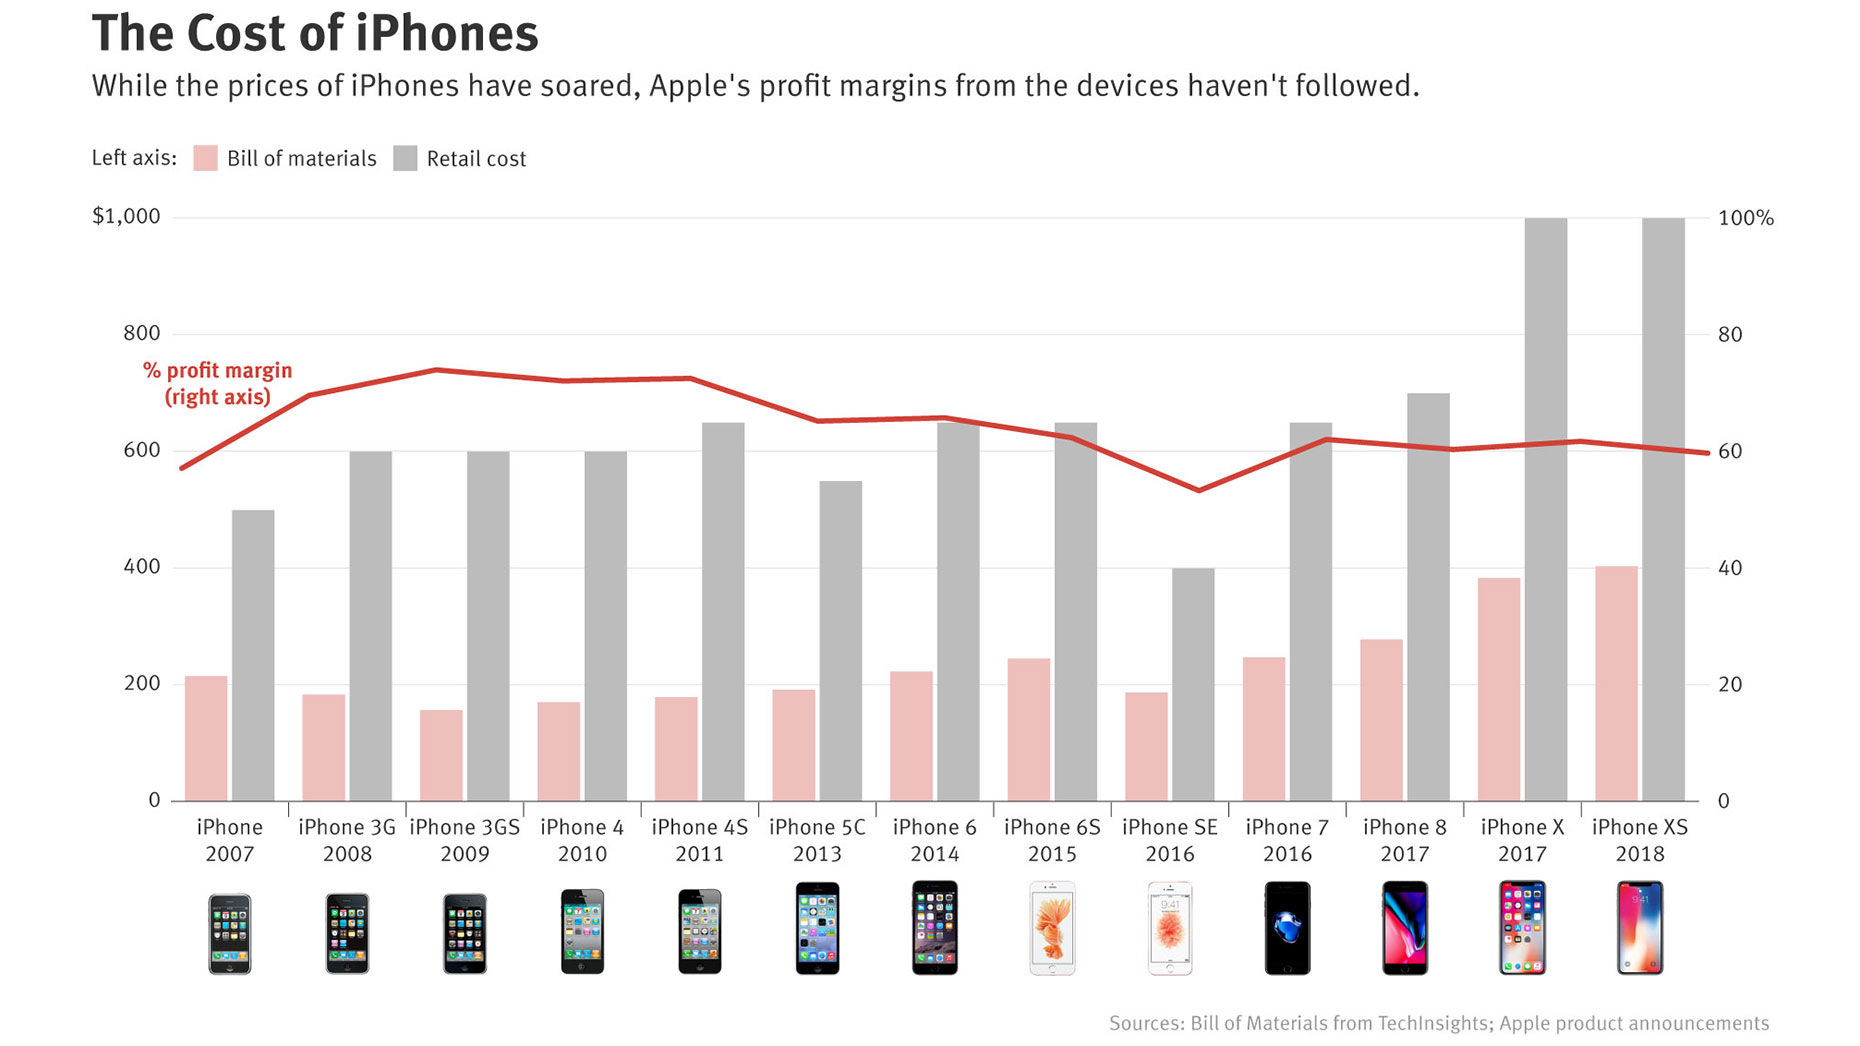 Apple's iPhone Prices Soar, but Not Profit Margins